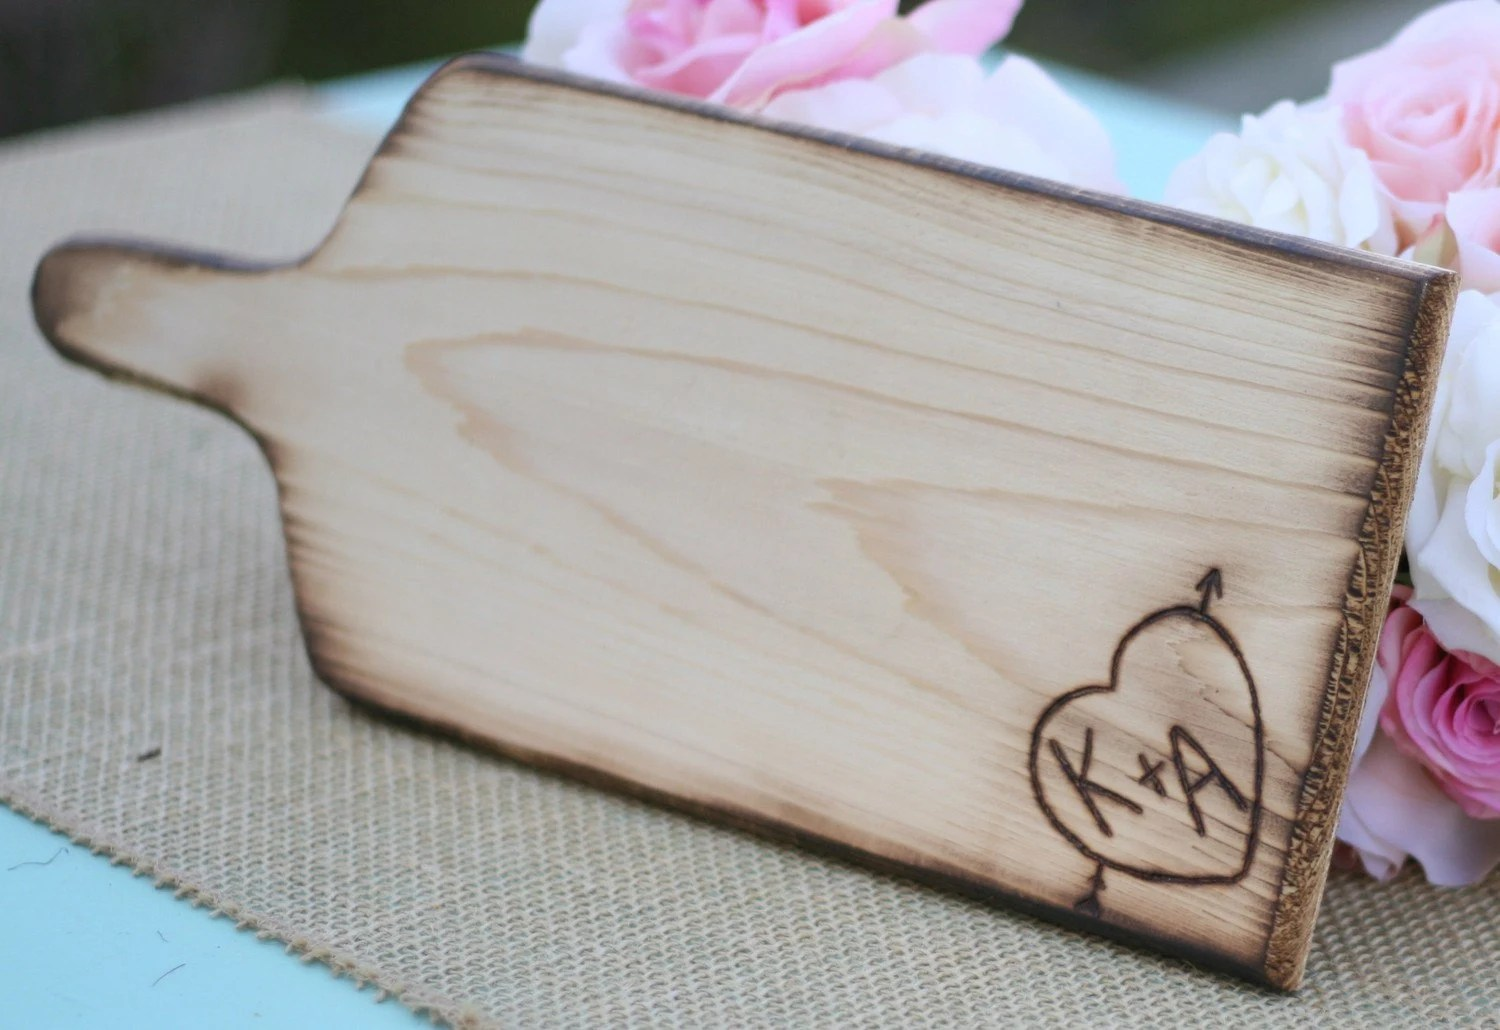 Northern White Cedar Cooking Grilling Plank OR Cutting Board Personalized